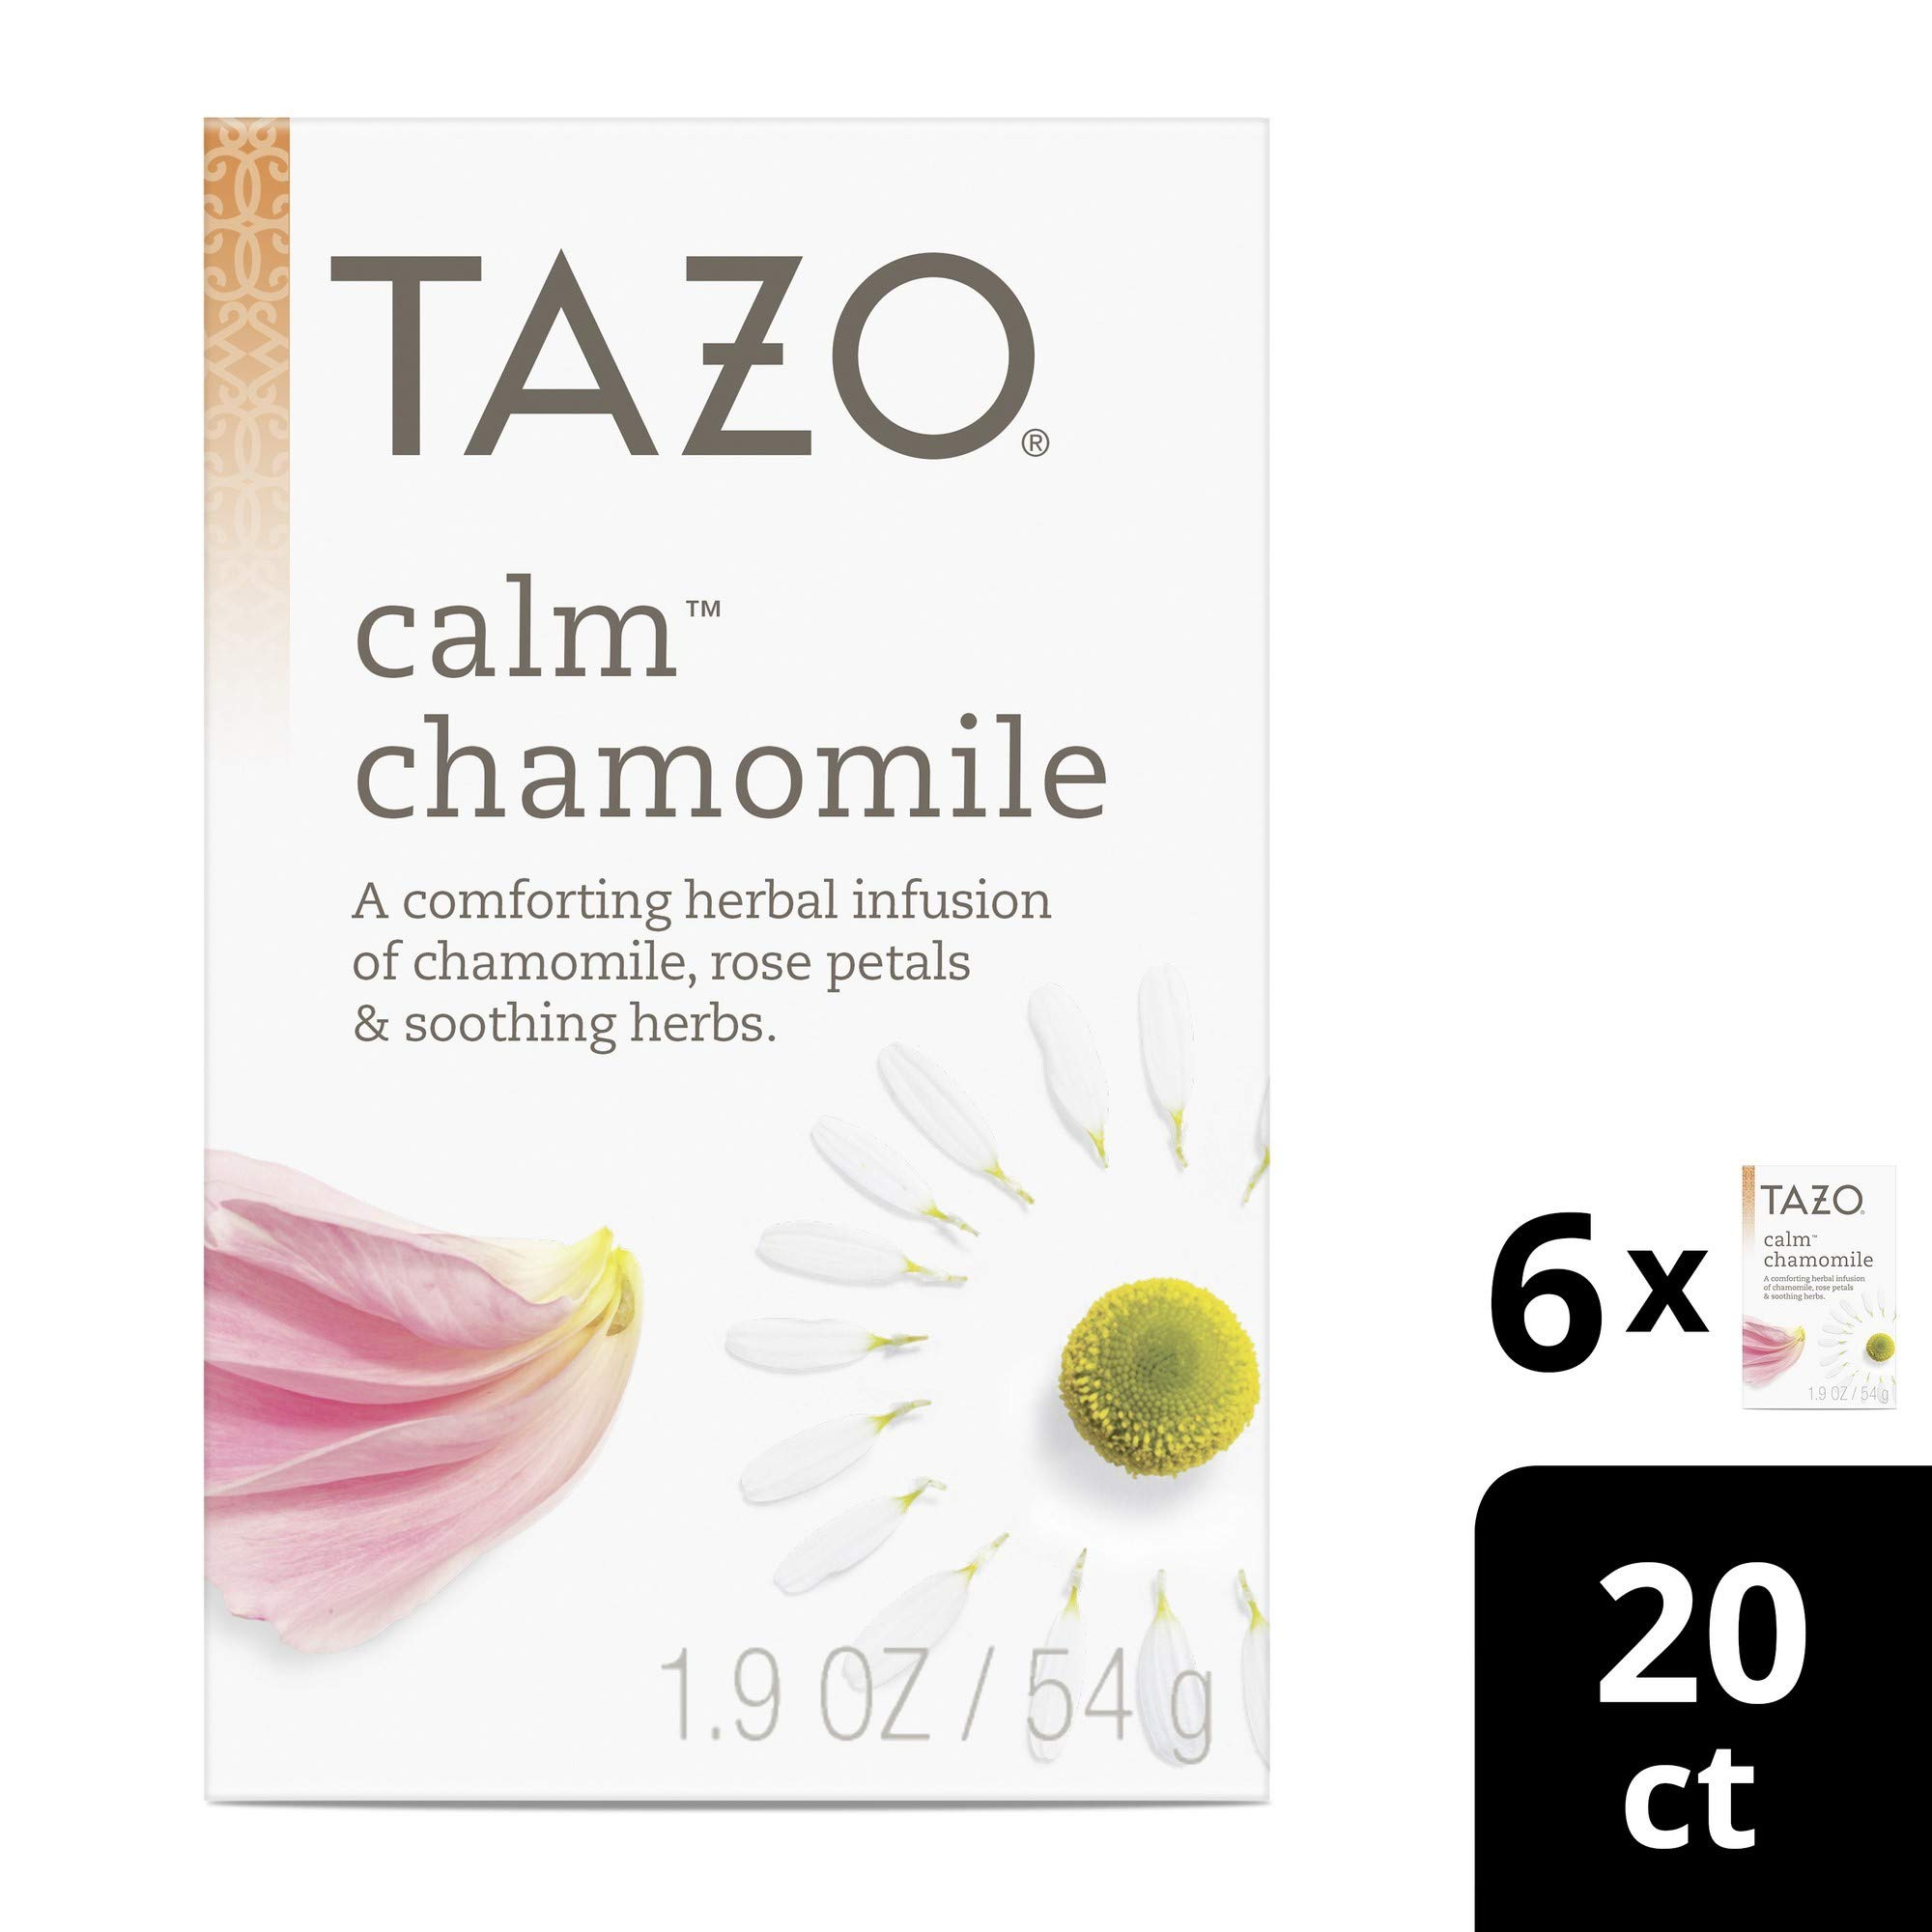 Tazo Tea Bags for a cup of relaxing chamomile tea Calm Chamomile Herbal Tea caffeine free 20 count, Pack of 6 by TAZO